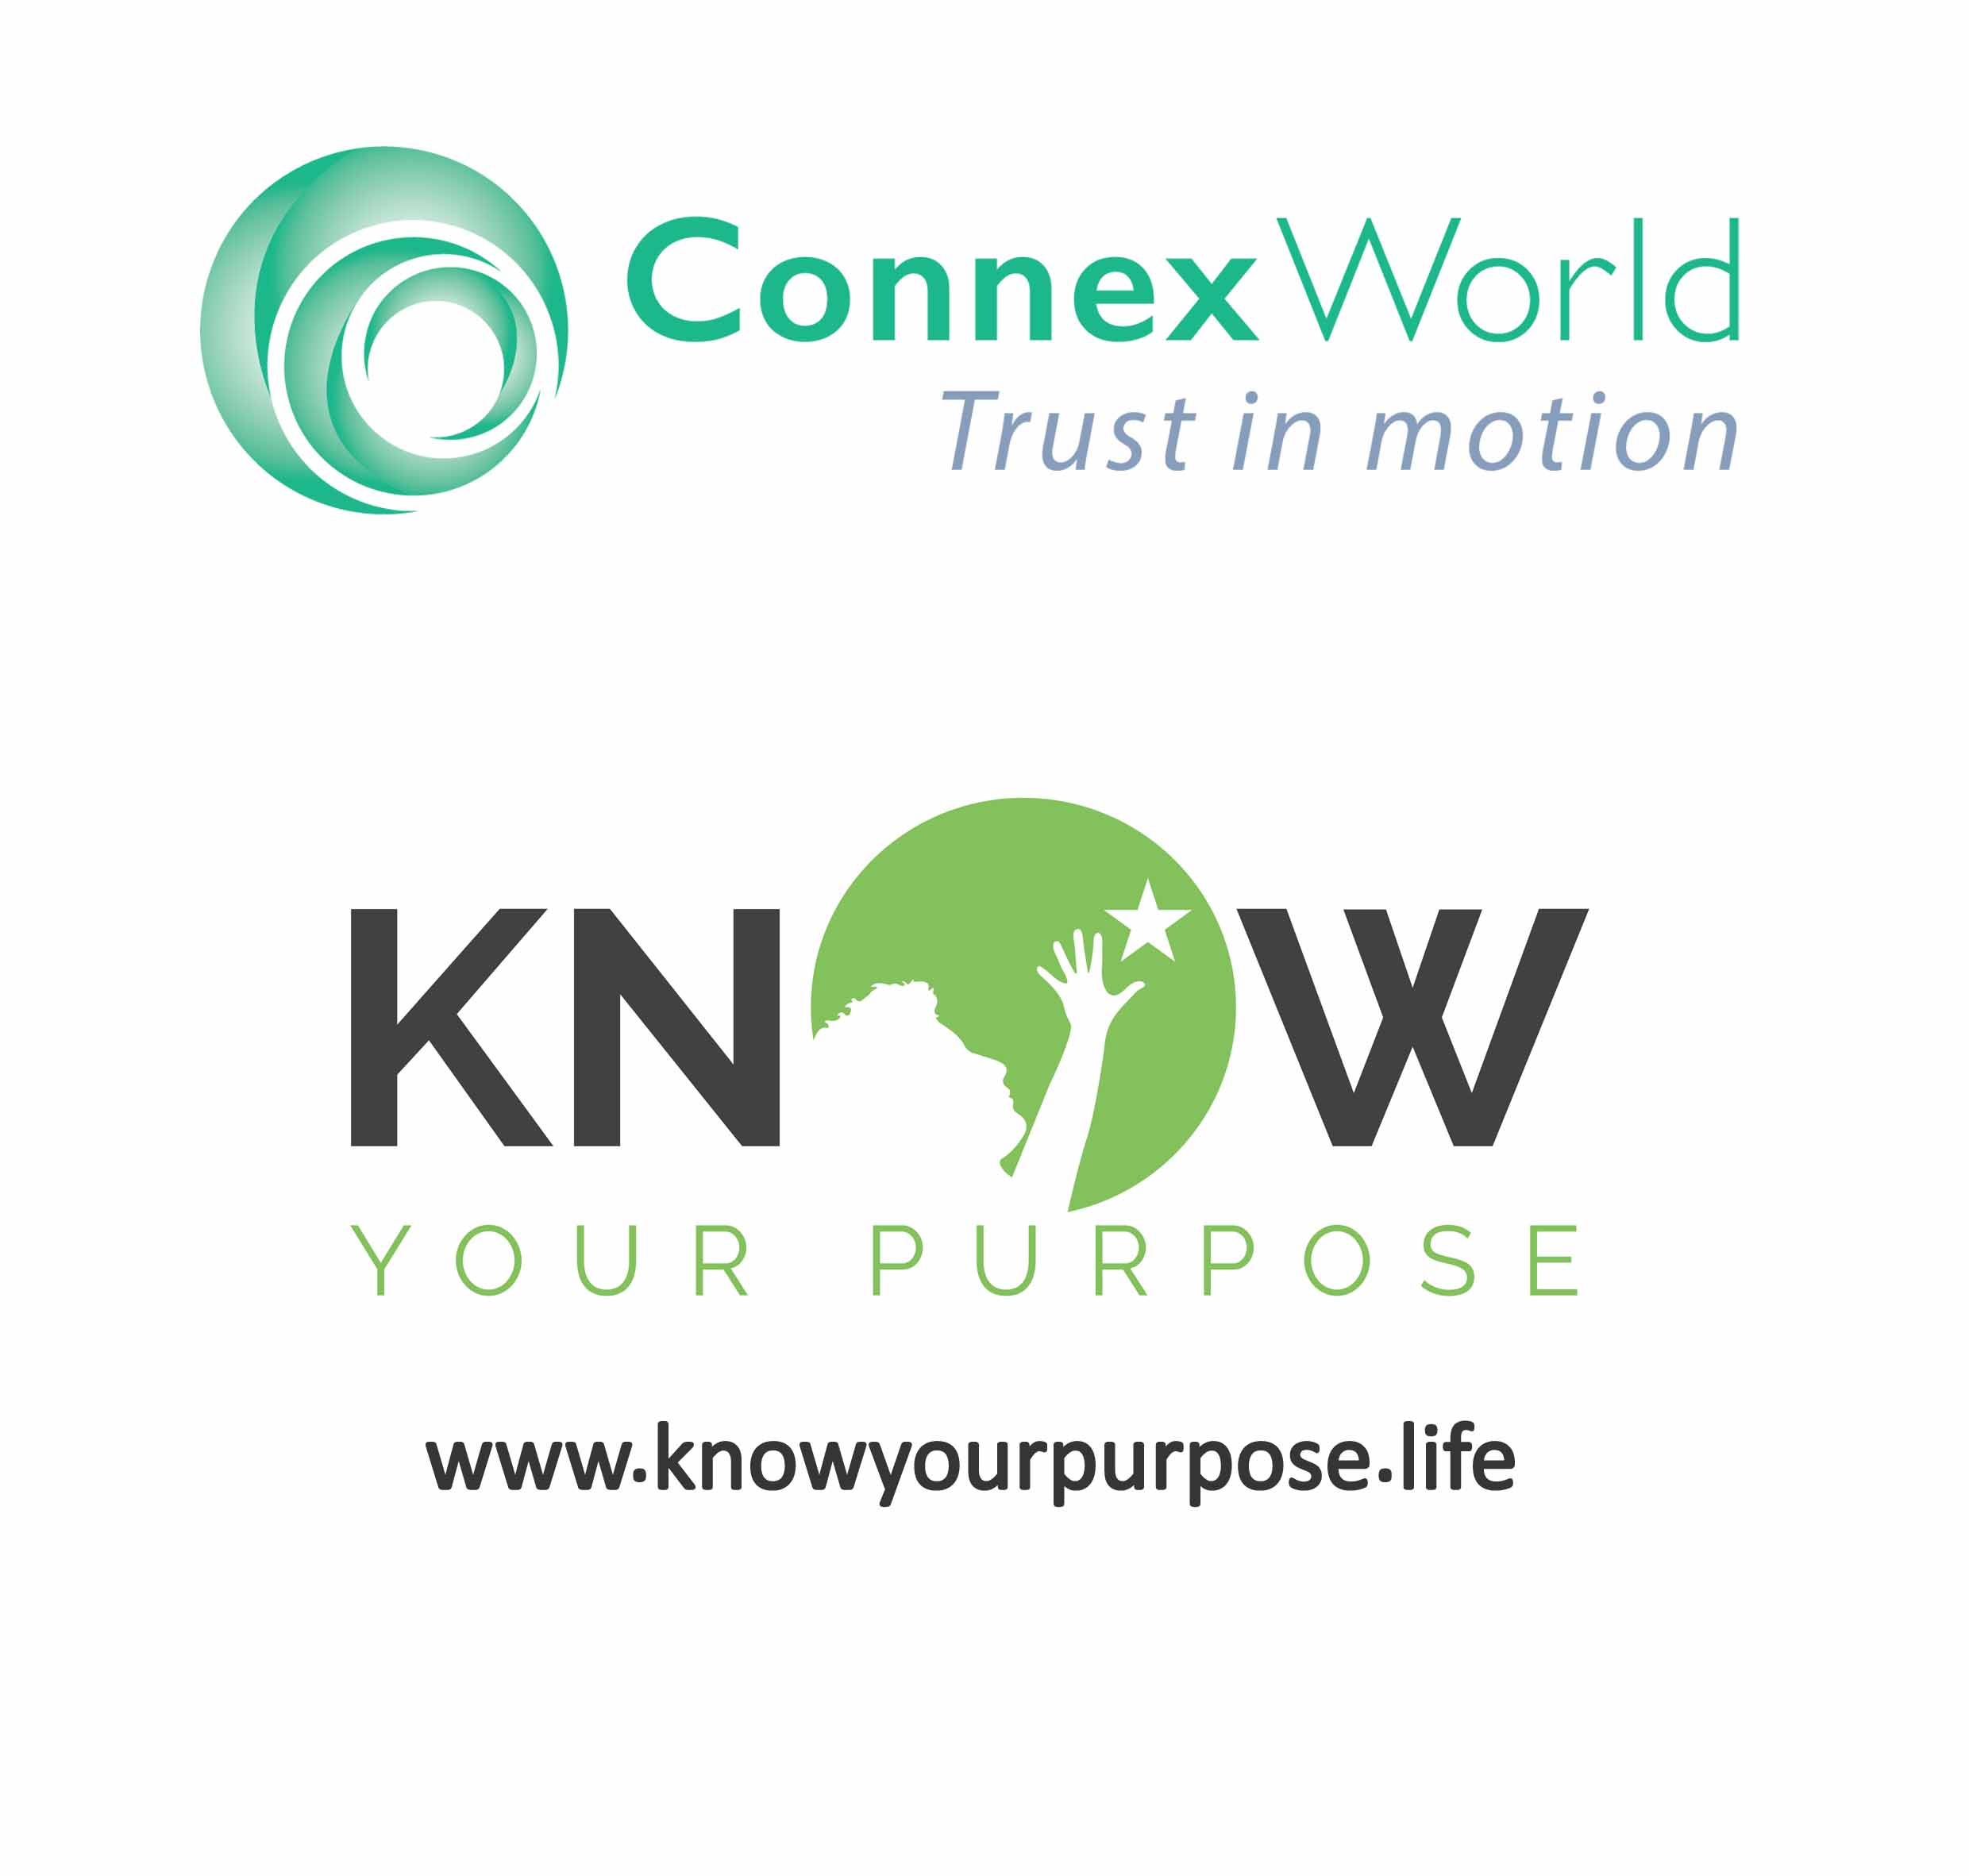 Connex World Limited and Know Your Purpose